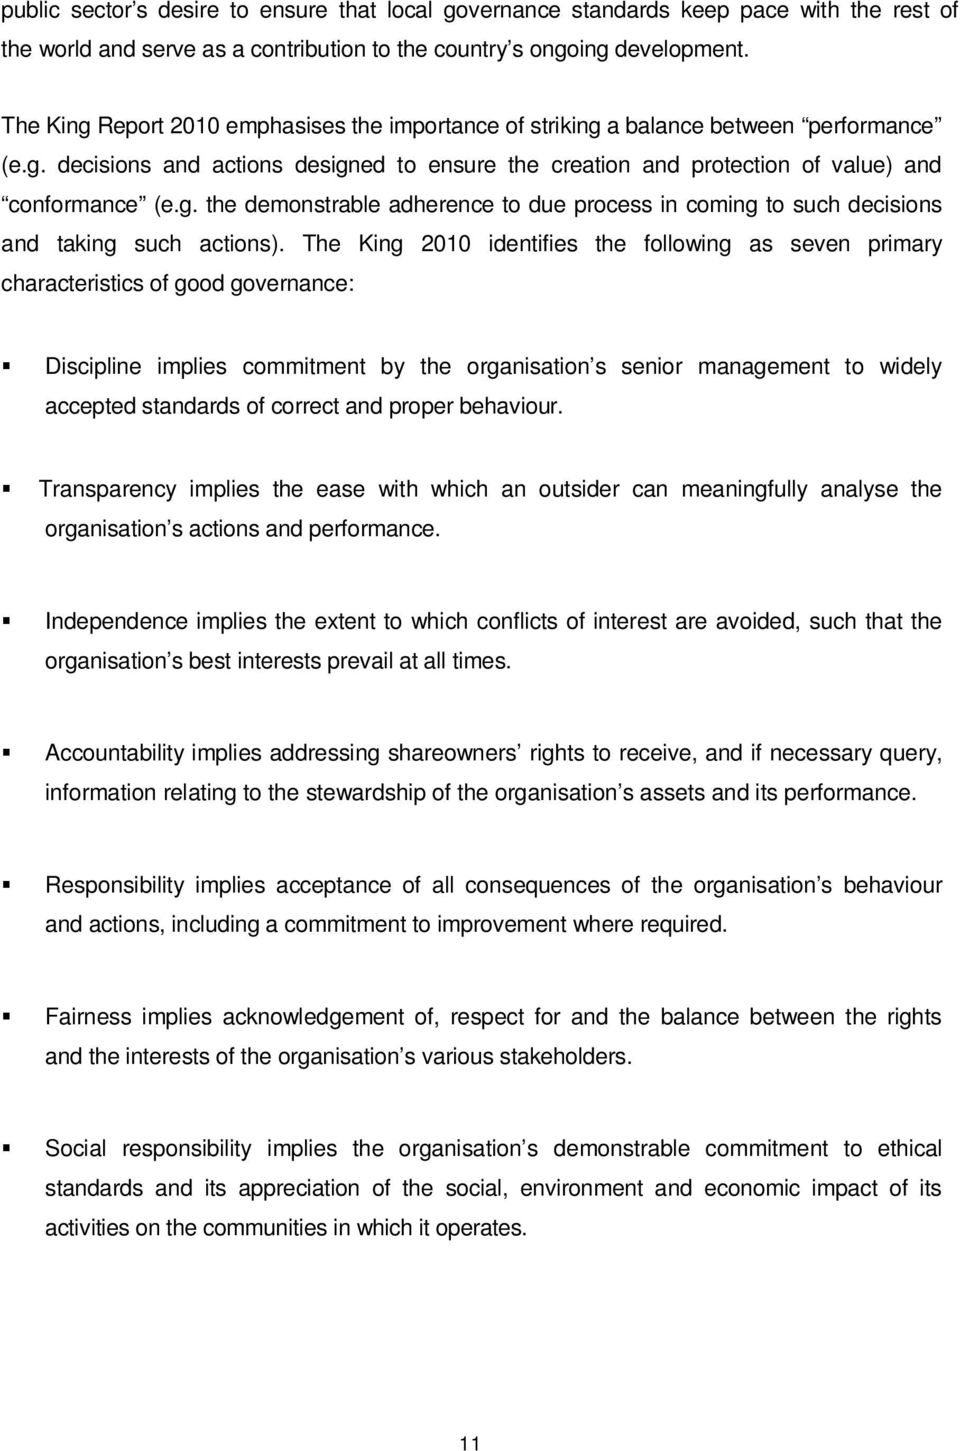 The King 2010 identifies the following as seven primary characteristics of good governance: Discipline implies commitment by the organisation s senior management to widely accepted standards of